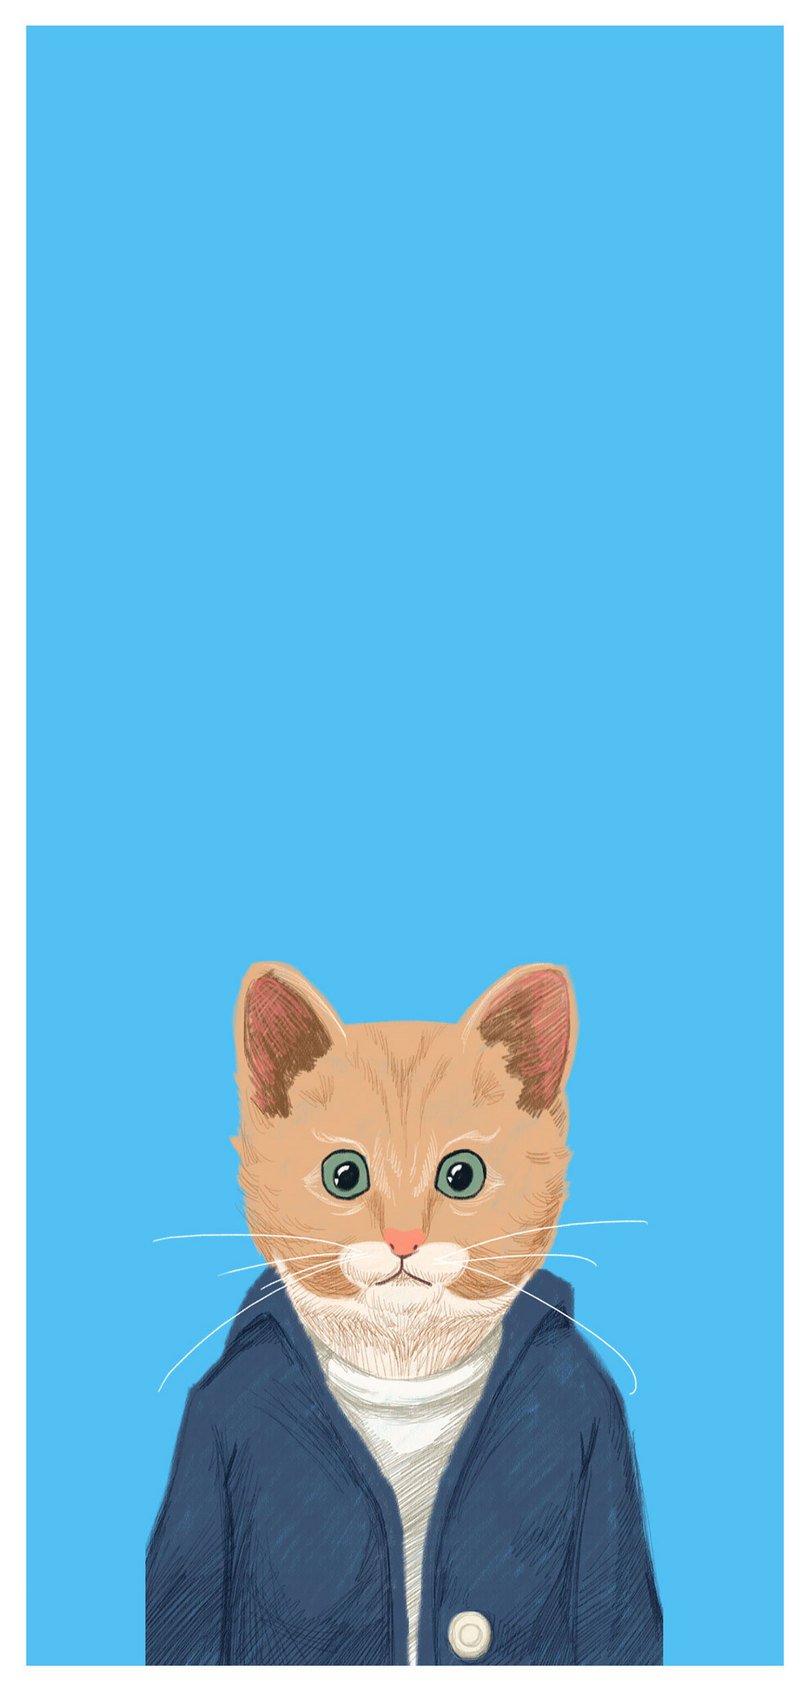 Cartoon Cat Mobile Wallpaper Backgrounds Images Free